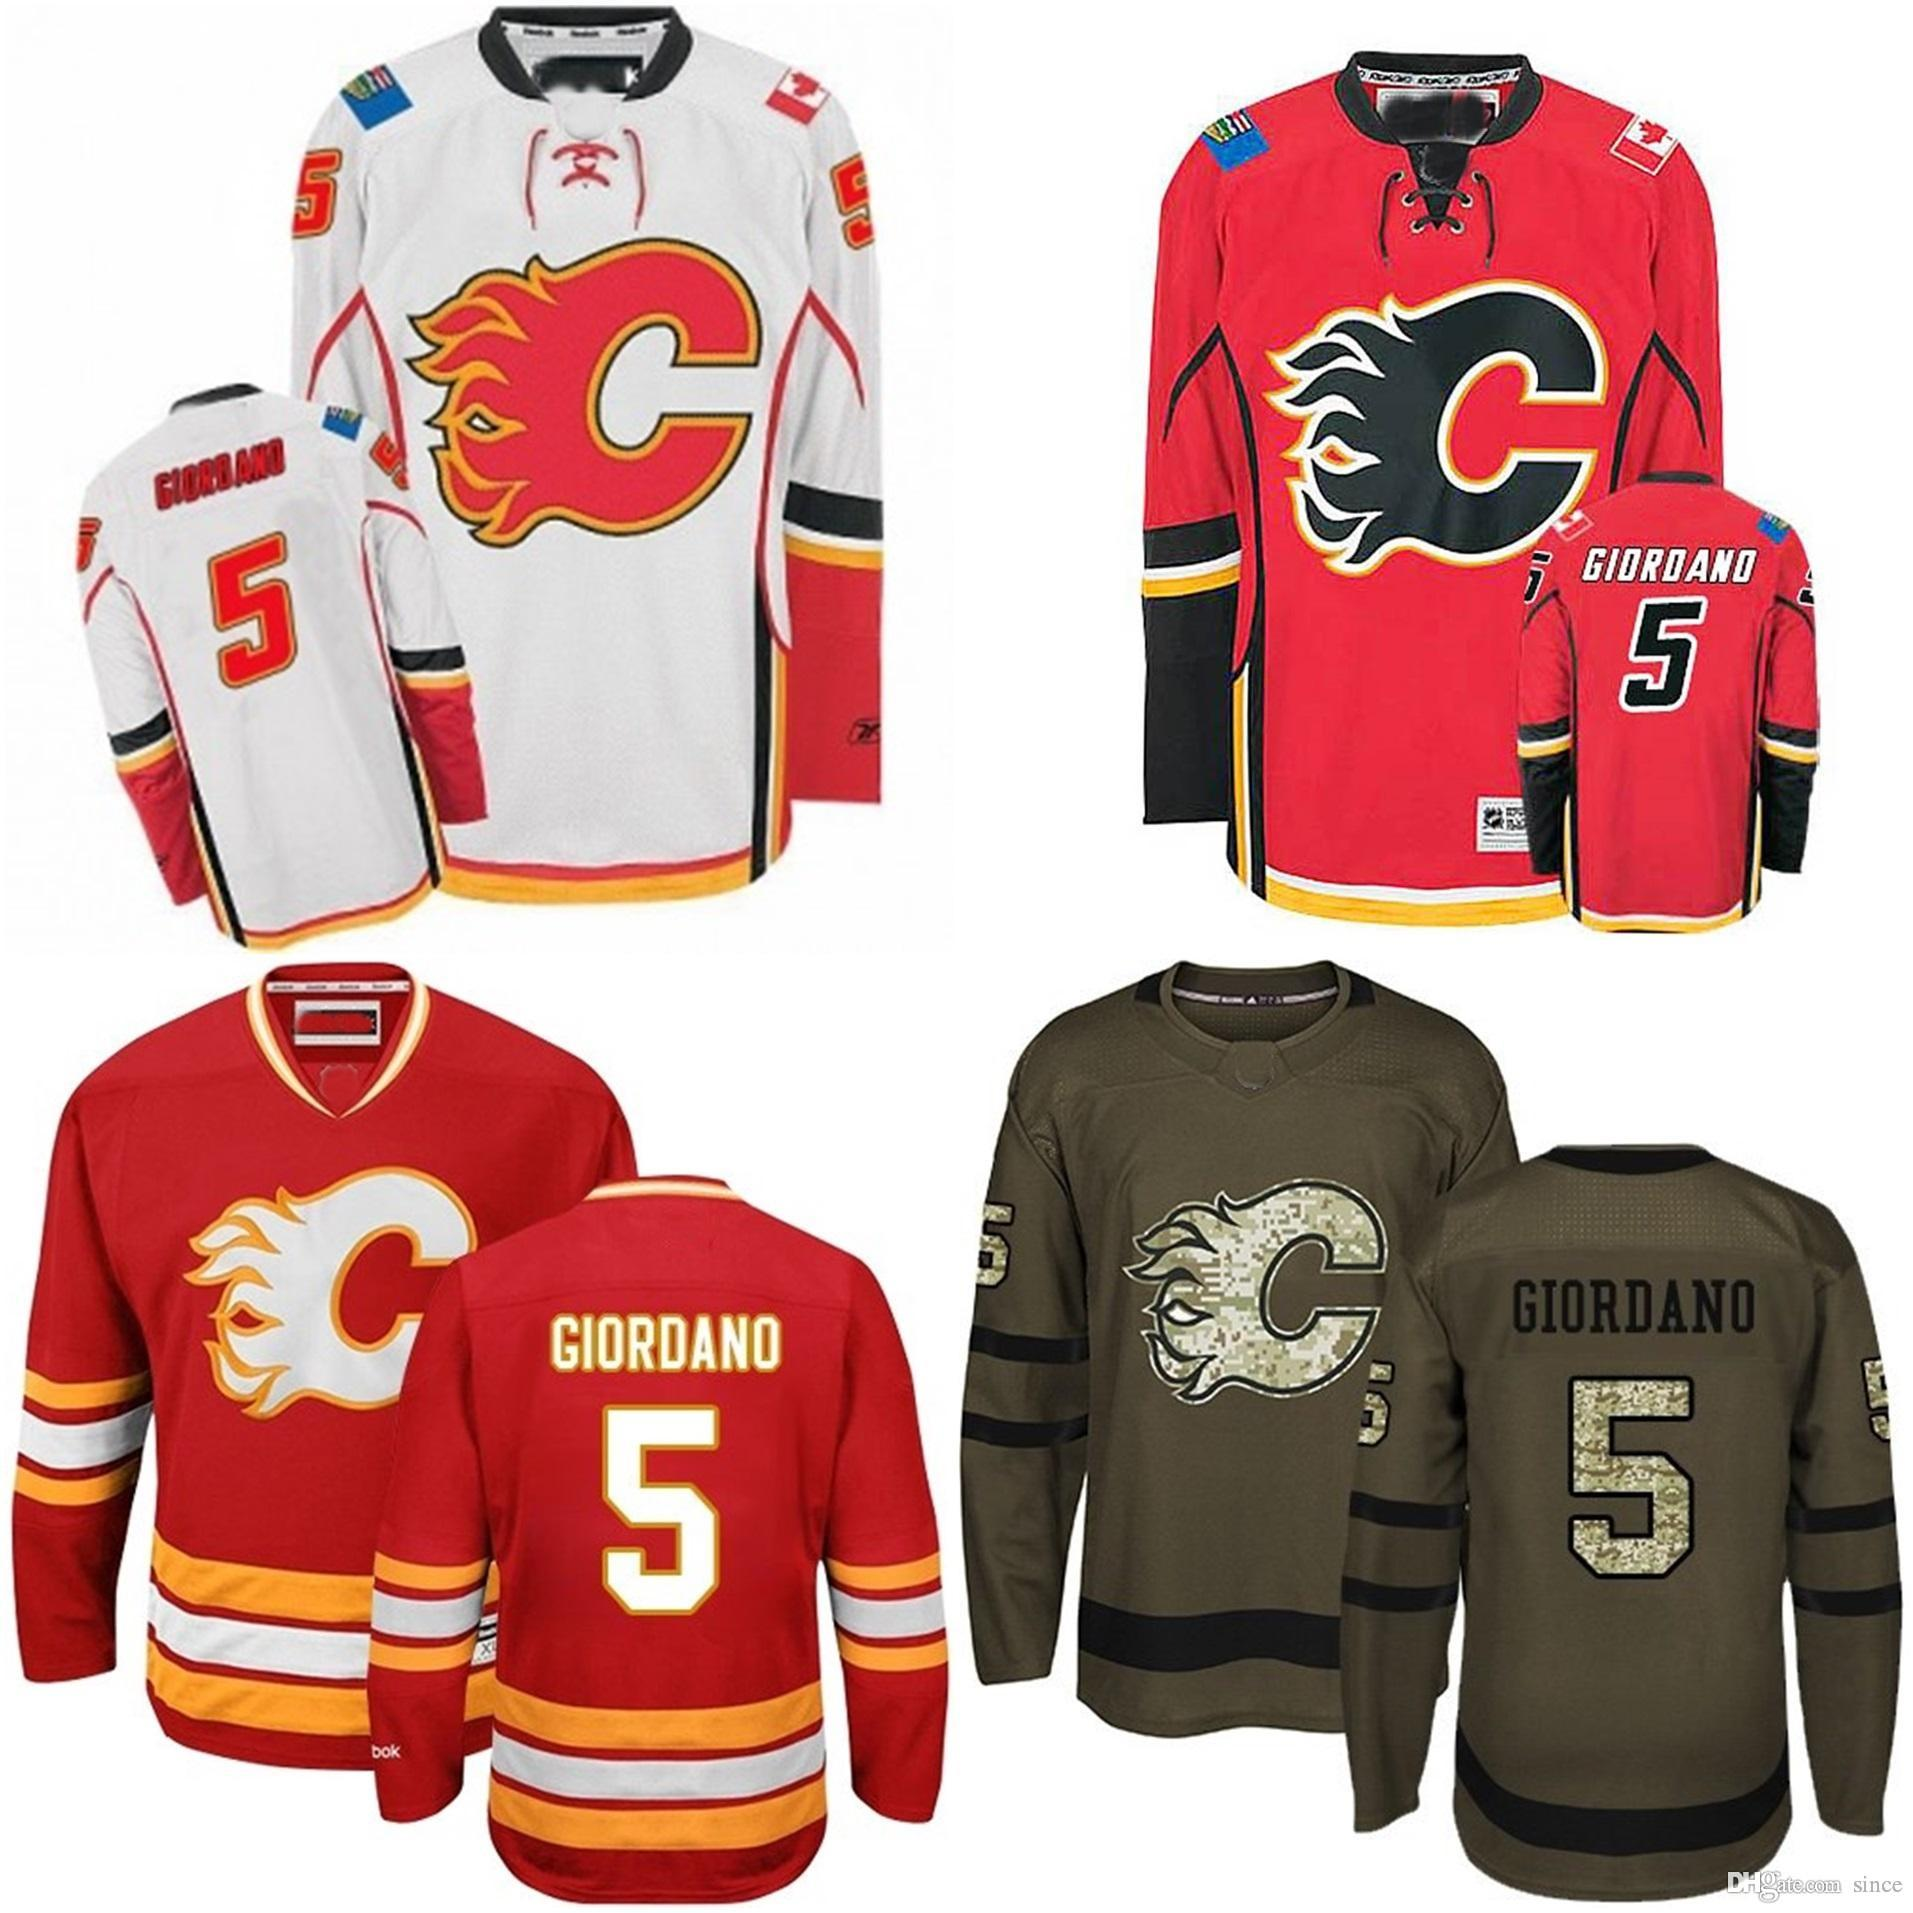 1511b07f8a6 2019 2016 New 2016 Cheap Mens 5 Mark Giordano Jersey Youth Calgary Flames Hockey  Jersey Red White Brown Authentic Kids 5 Mark Giordano Jerseys From Since